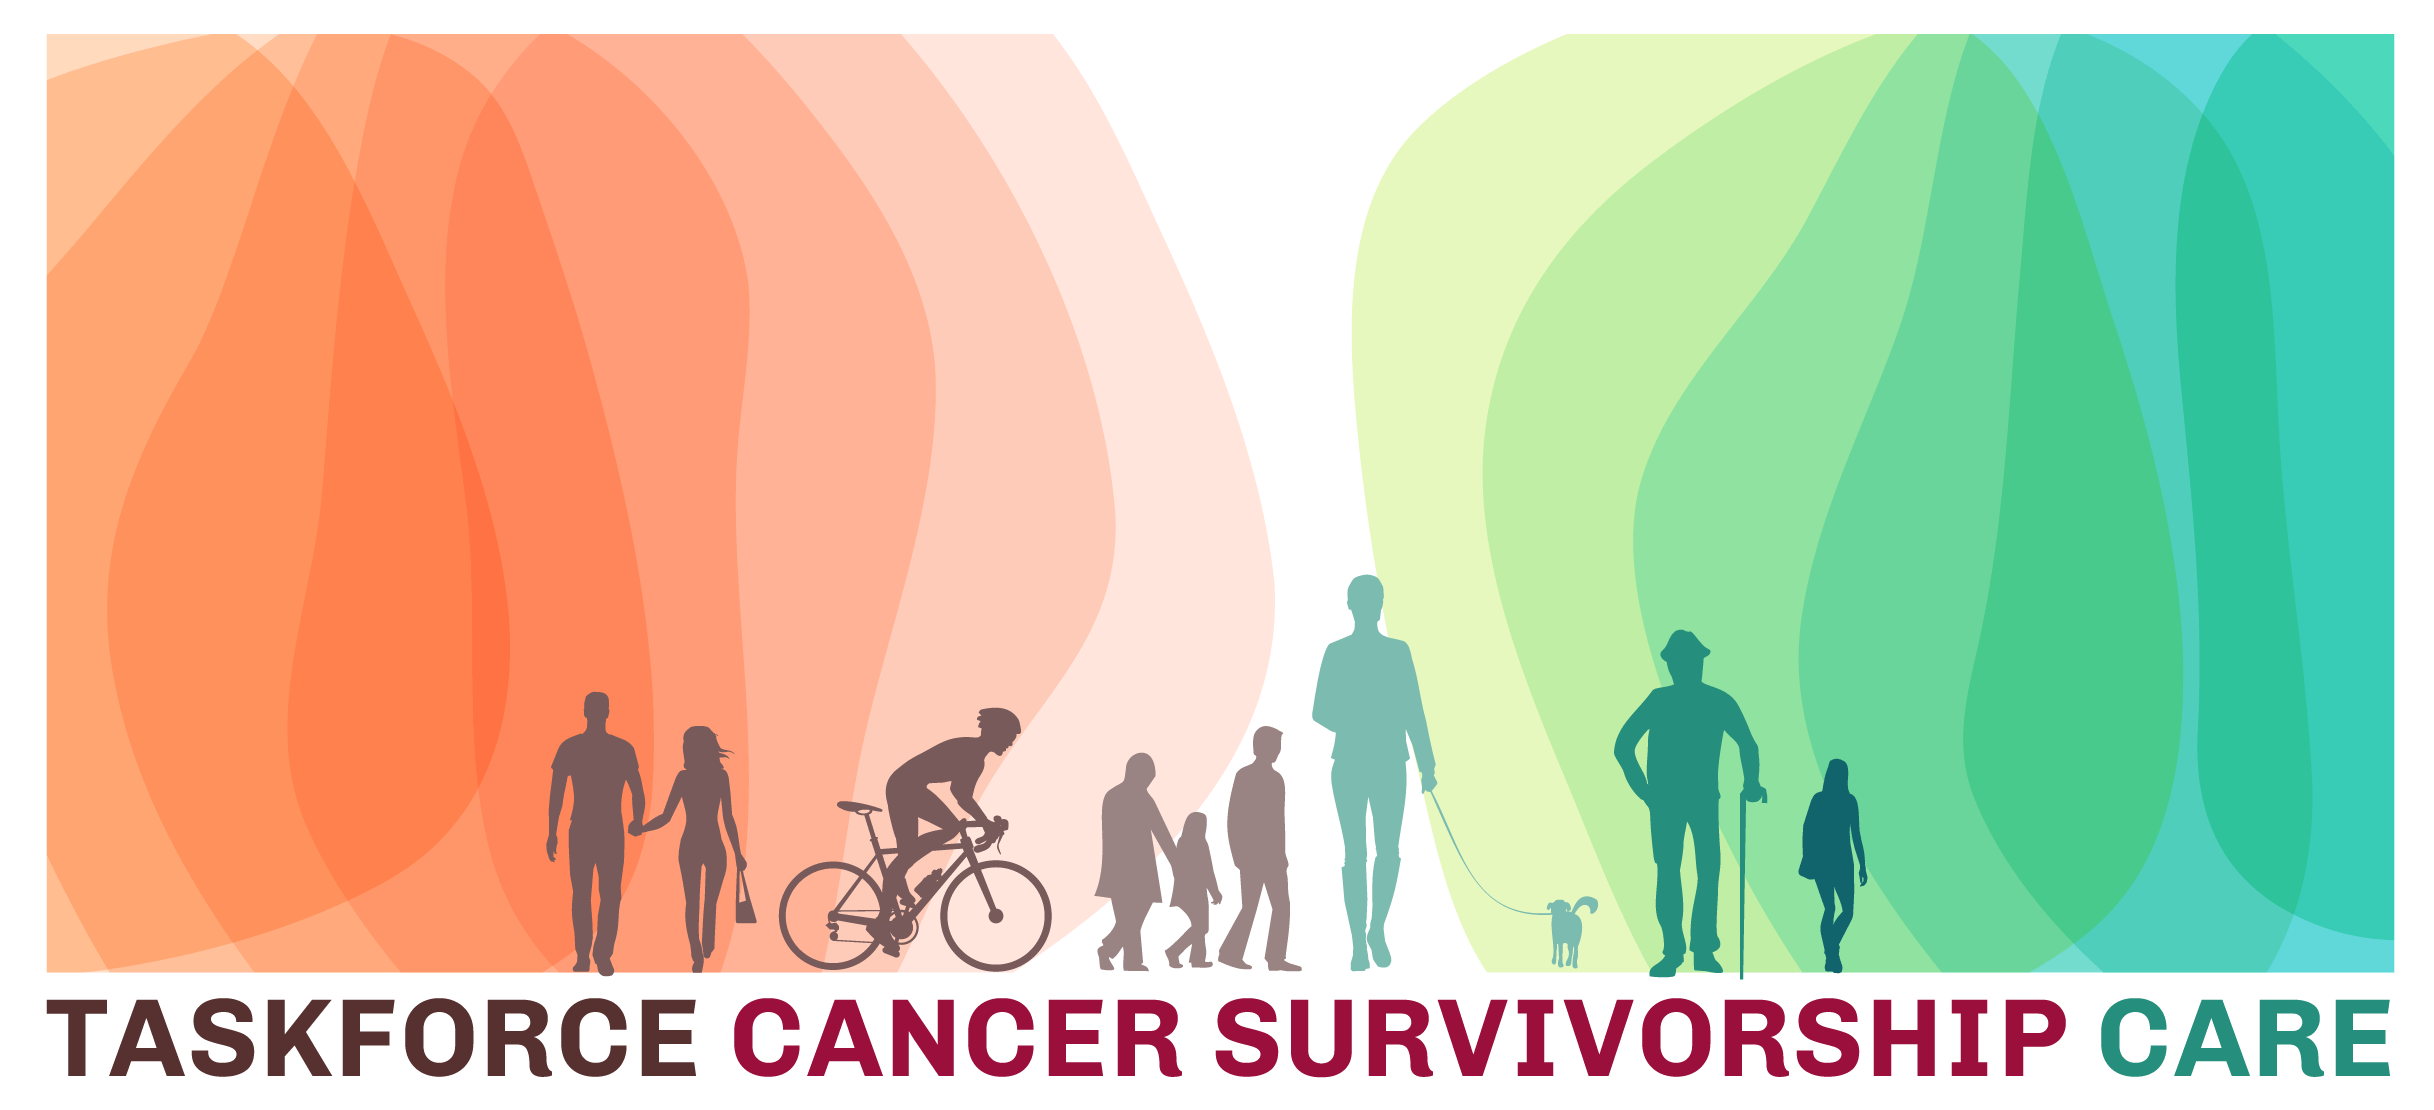 Taskforce Cancer Survivorship Care Logo